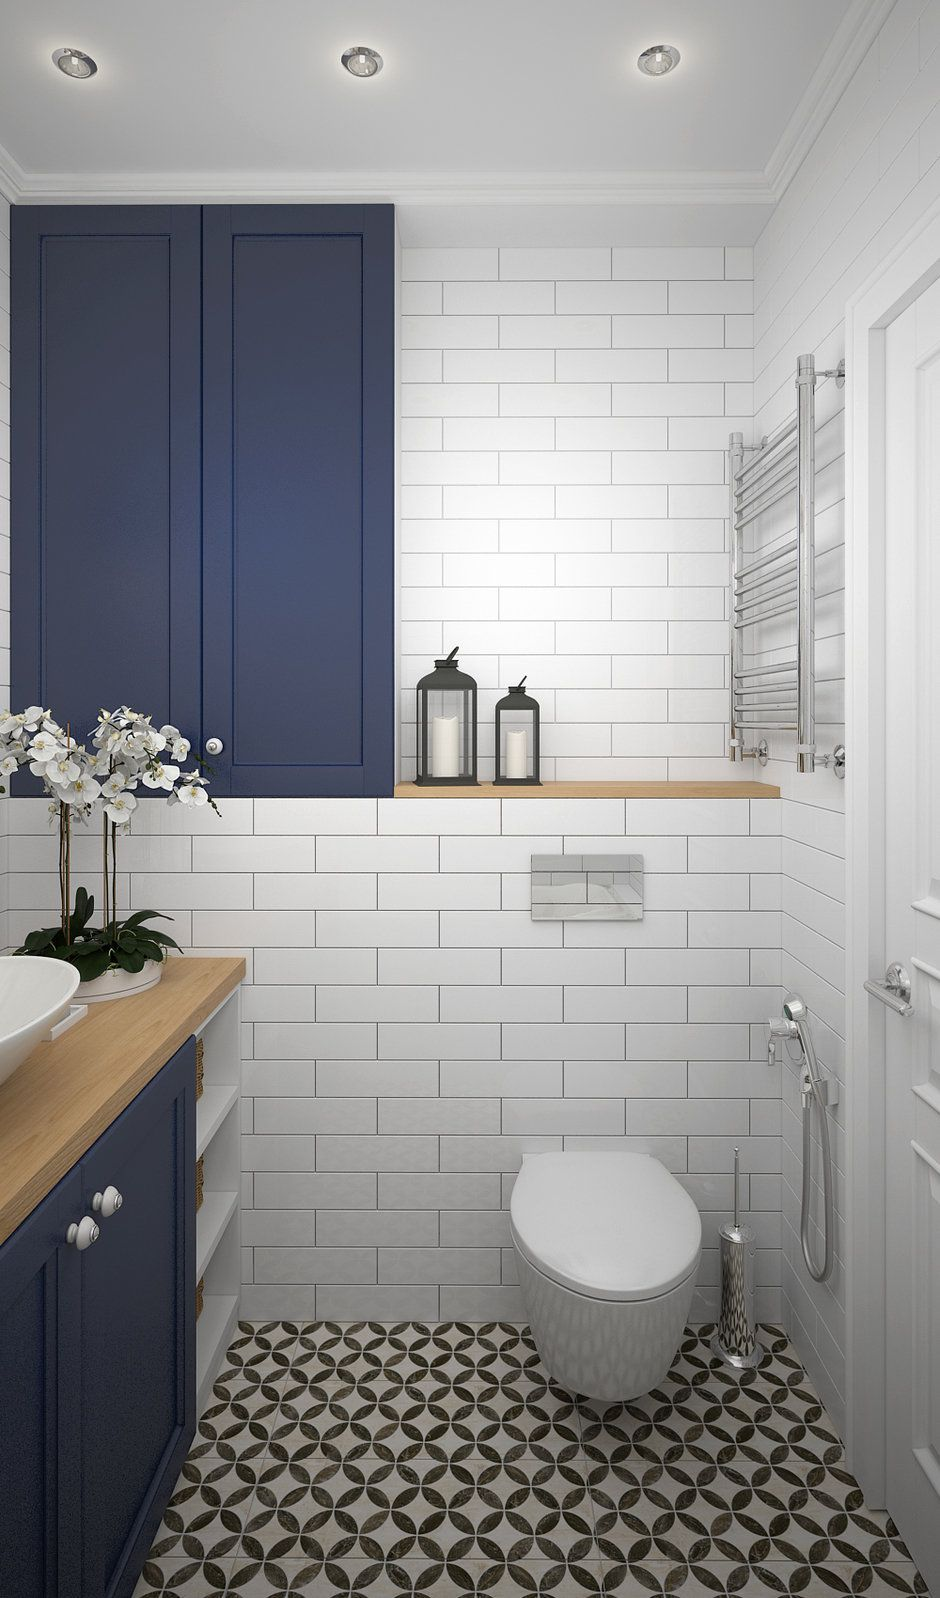 Some Design Ideas To Decorate Your Small Bathroom Idee Salle De